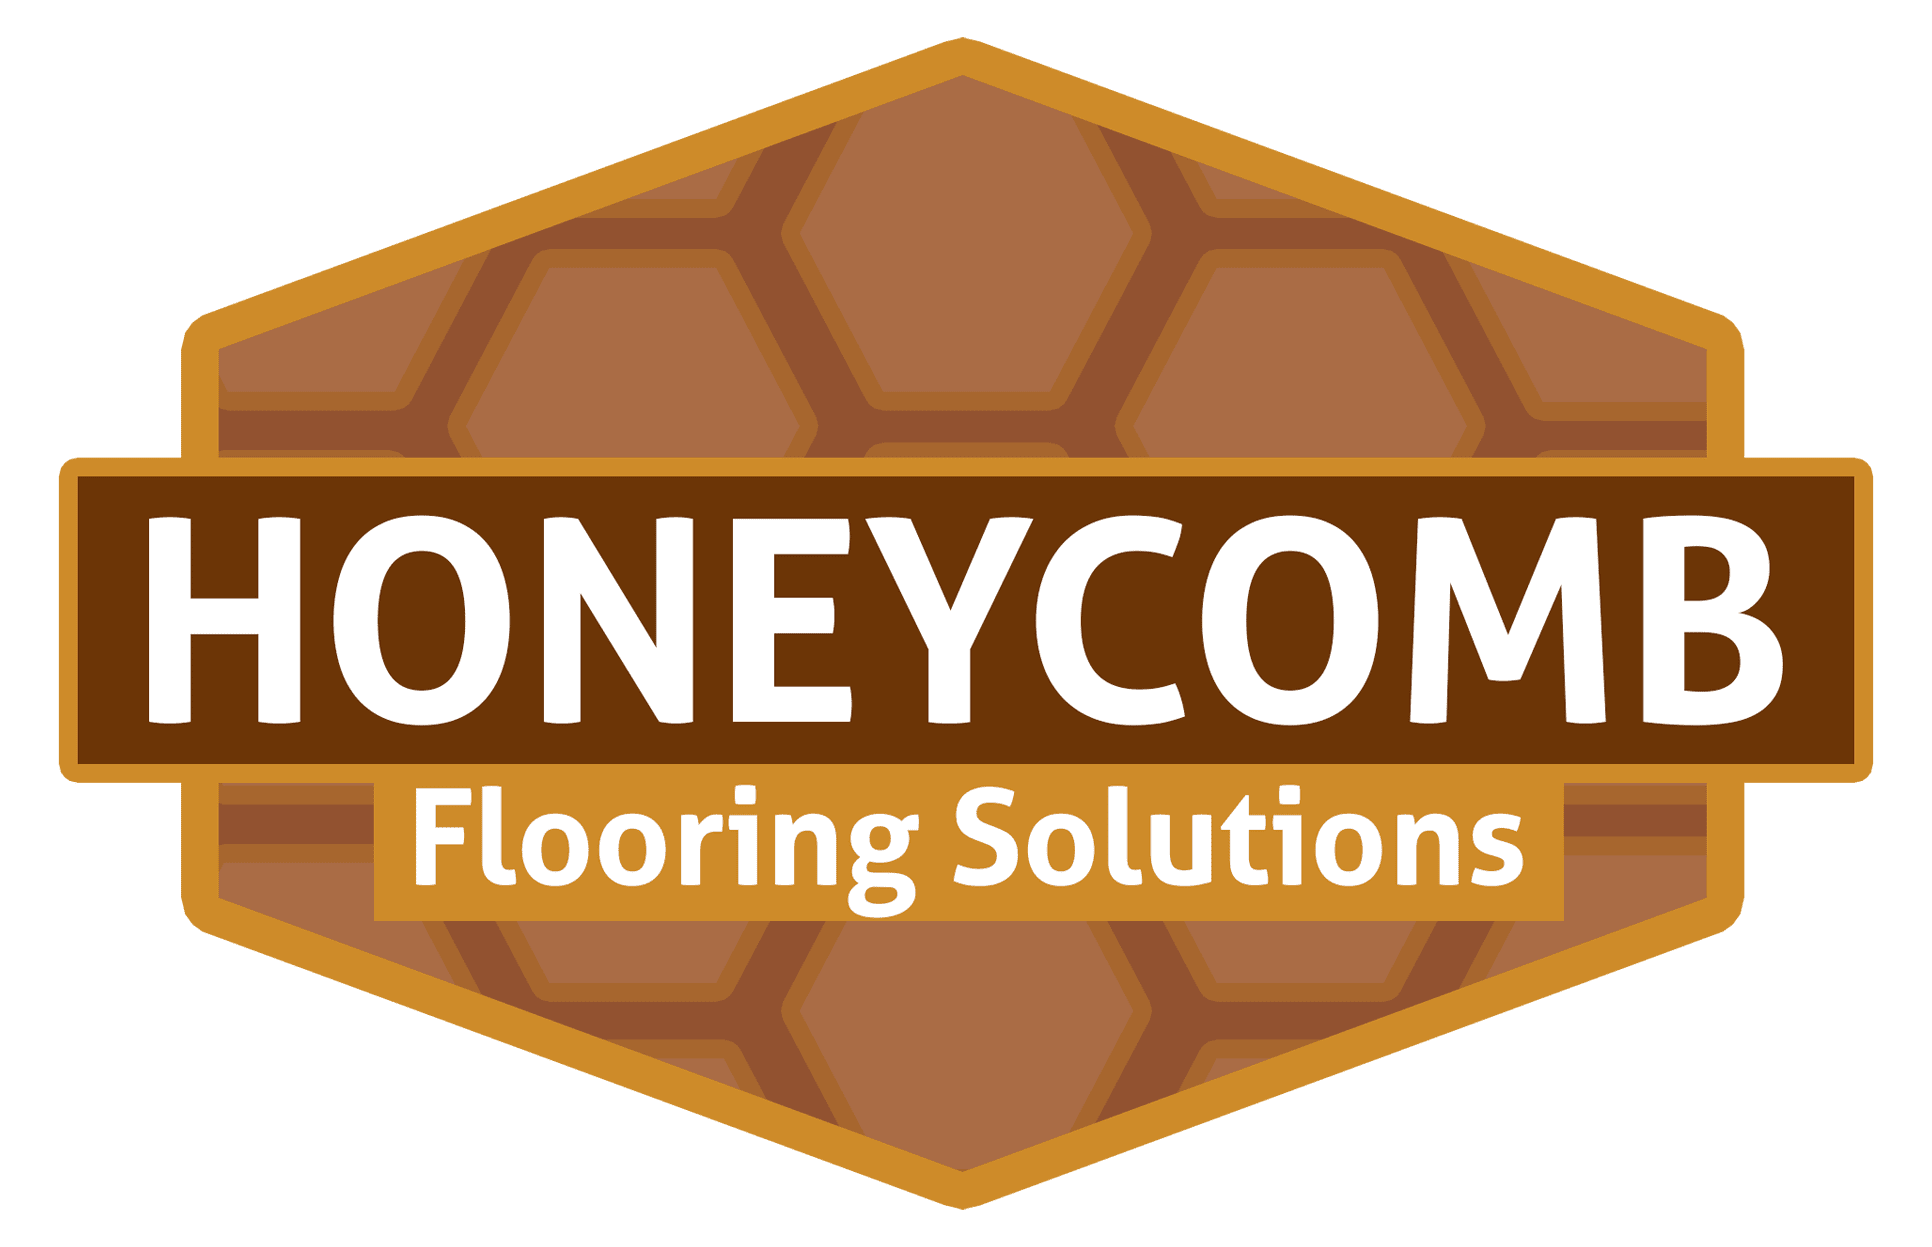 HoneyComb Flooring Solutions